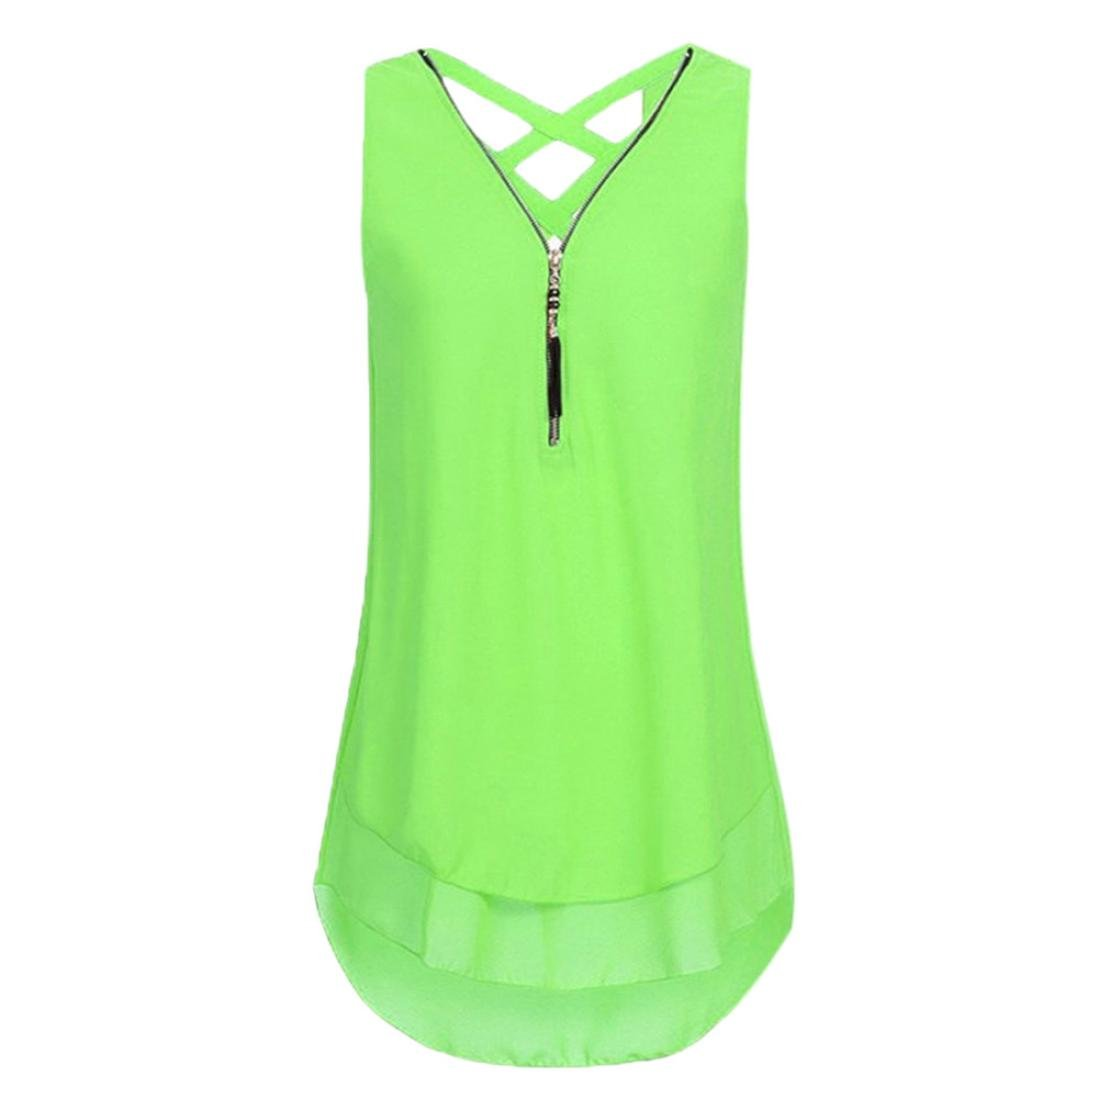 HARRYSTORE Women's Scallop Hem Tank Top Summer Casual V-Neck Sleeveless Chiffon Shirt Criss Cross Zip up Blouse Tops